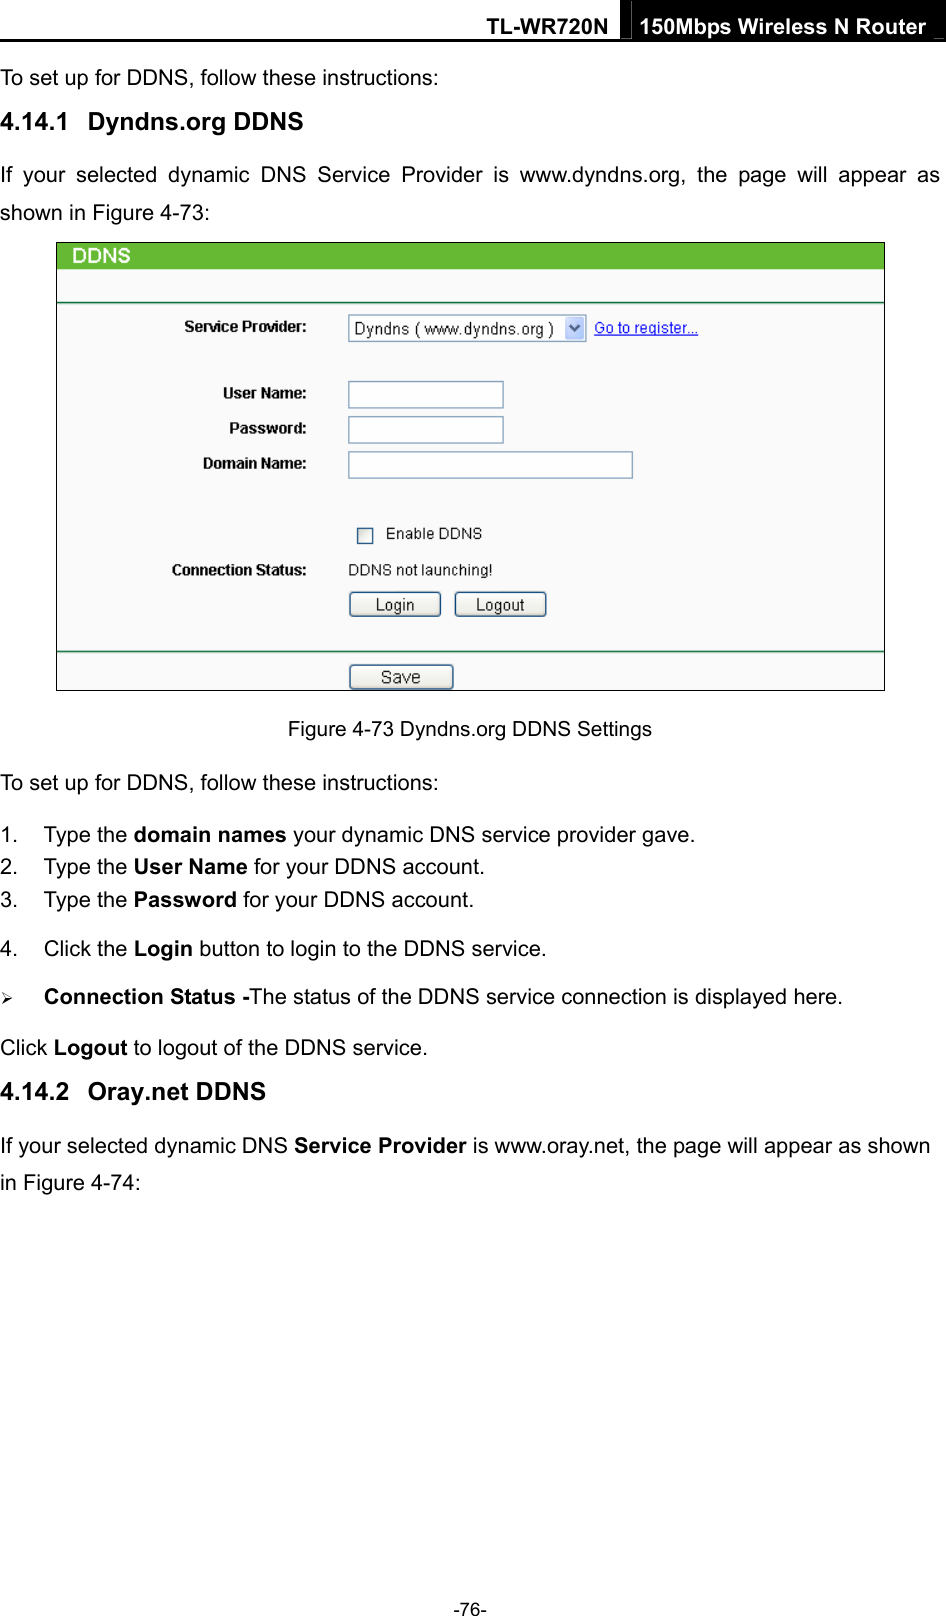 tp link router user guide